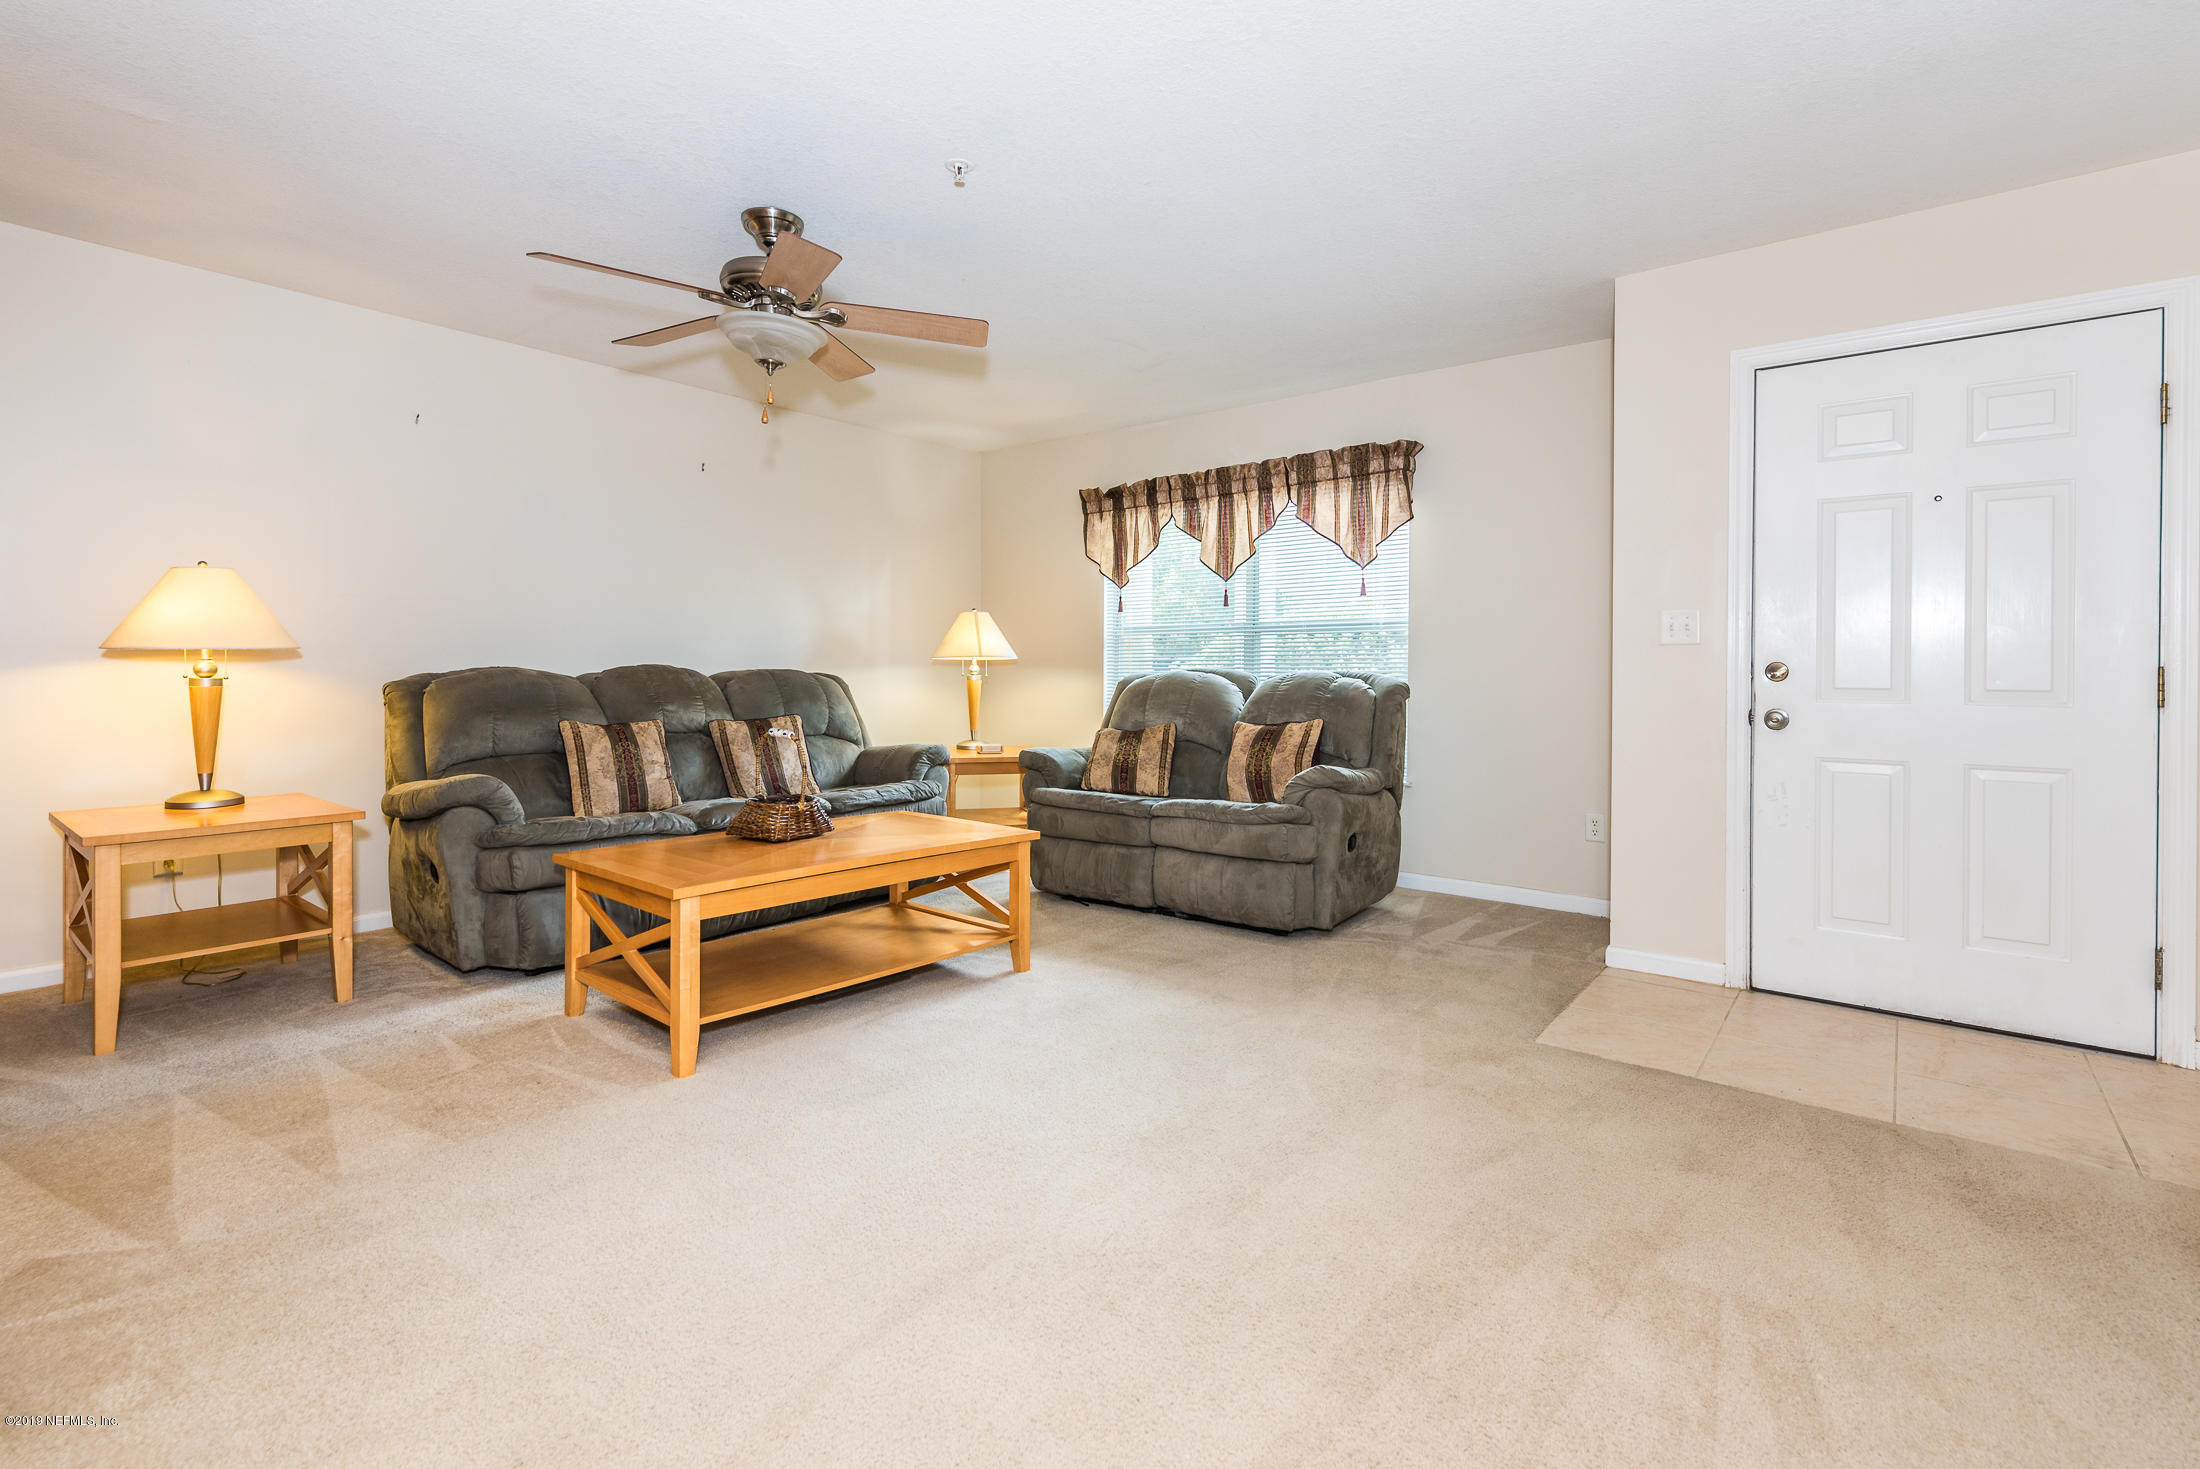 208 16TH, ST AUGUSTINE, FLORIDA 32080, 2 Bedrooms Bedrooms, ,2 BathroomsBathrooms,Condo,For sale,16TH,1016183